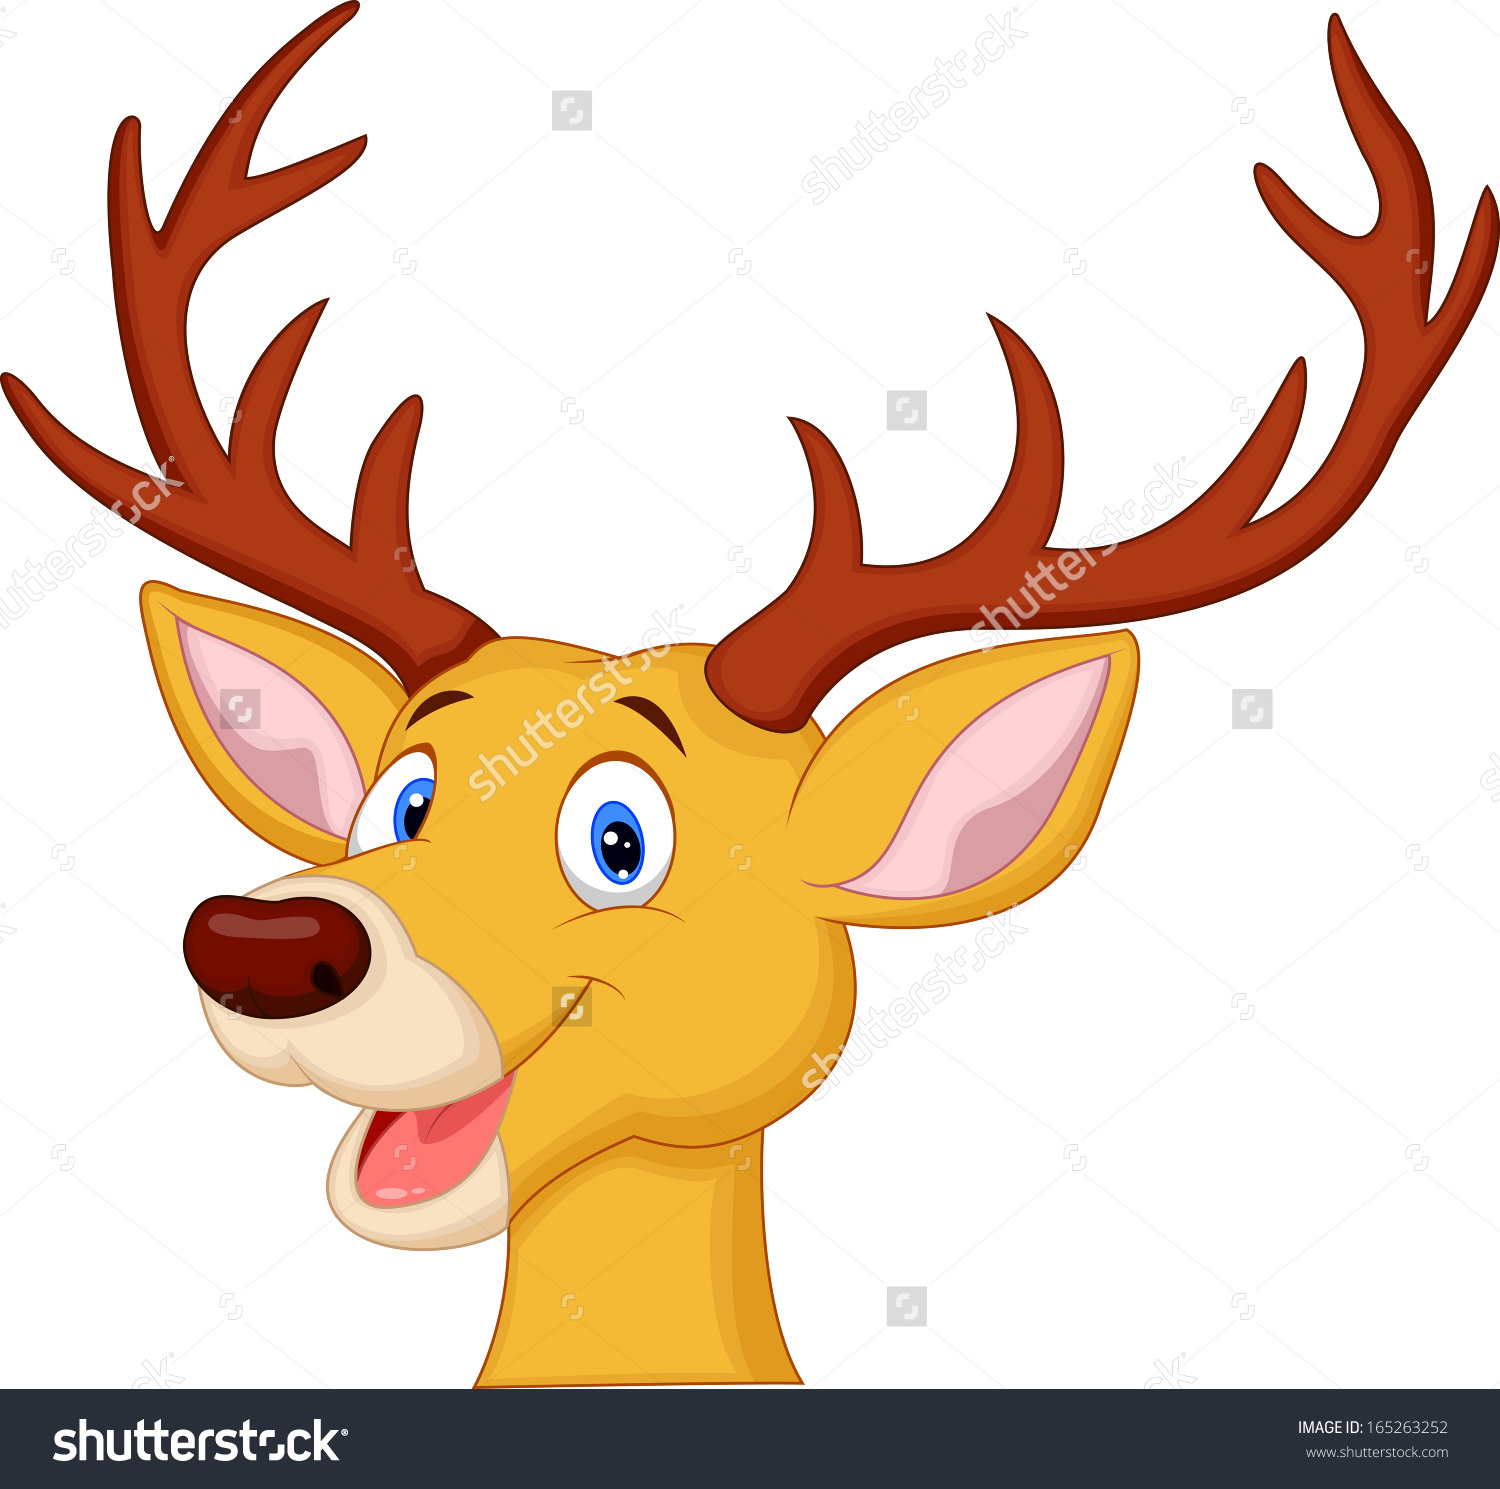 reindeer head clipart at getdrawings com free for personal use rh getdrawings com cute santa and reindeer clipart